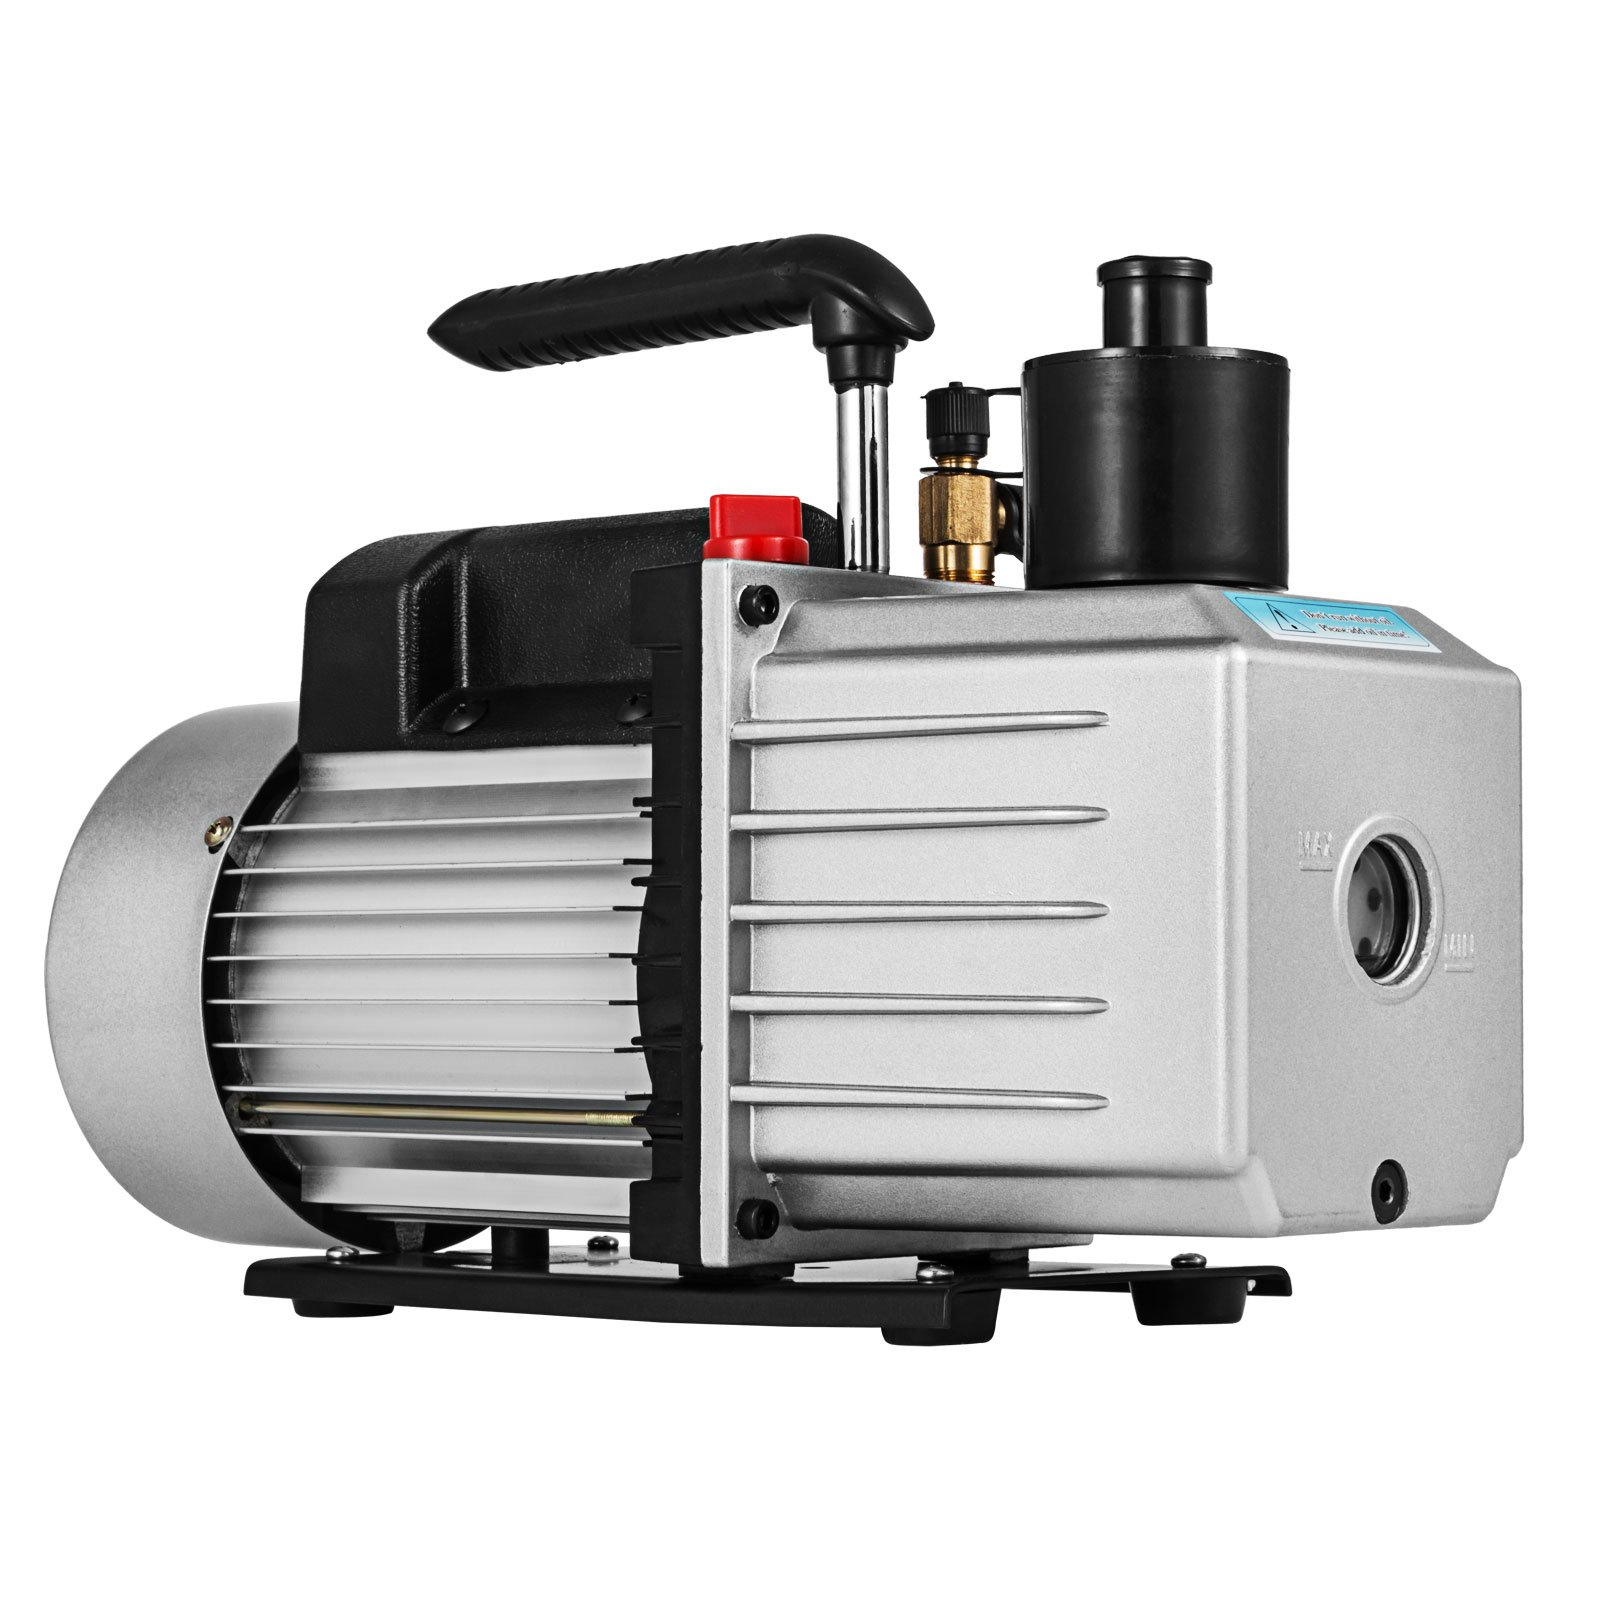 VEVOR Vacuum Pump 8CFM 1HP Two Stage HVAC Rotary Vane Vacuum Pump Wine Degassing Milking Medical Food Processing Air Conditioning Auto AC Refrigerant Vacuum Pump (2-Stage, 8CFM) by VEVOR (Image #5)